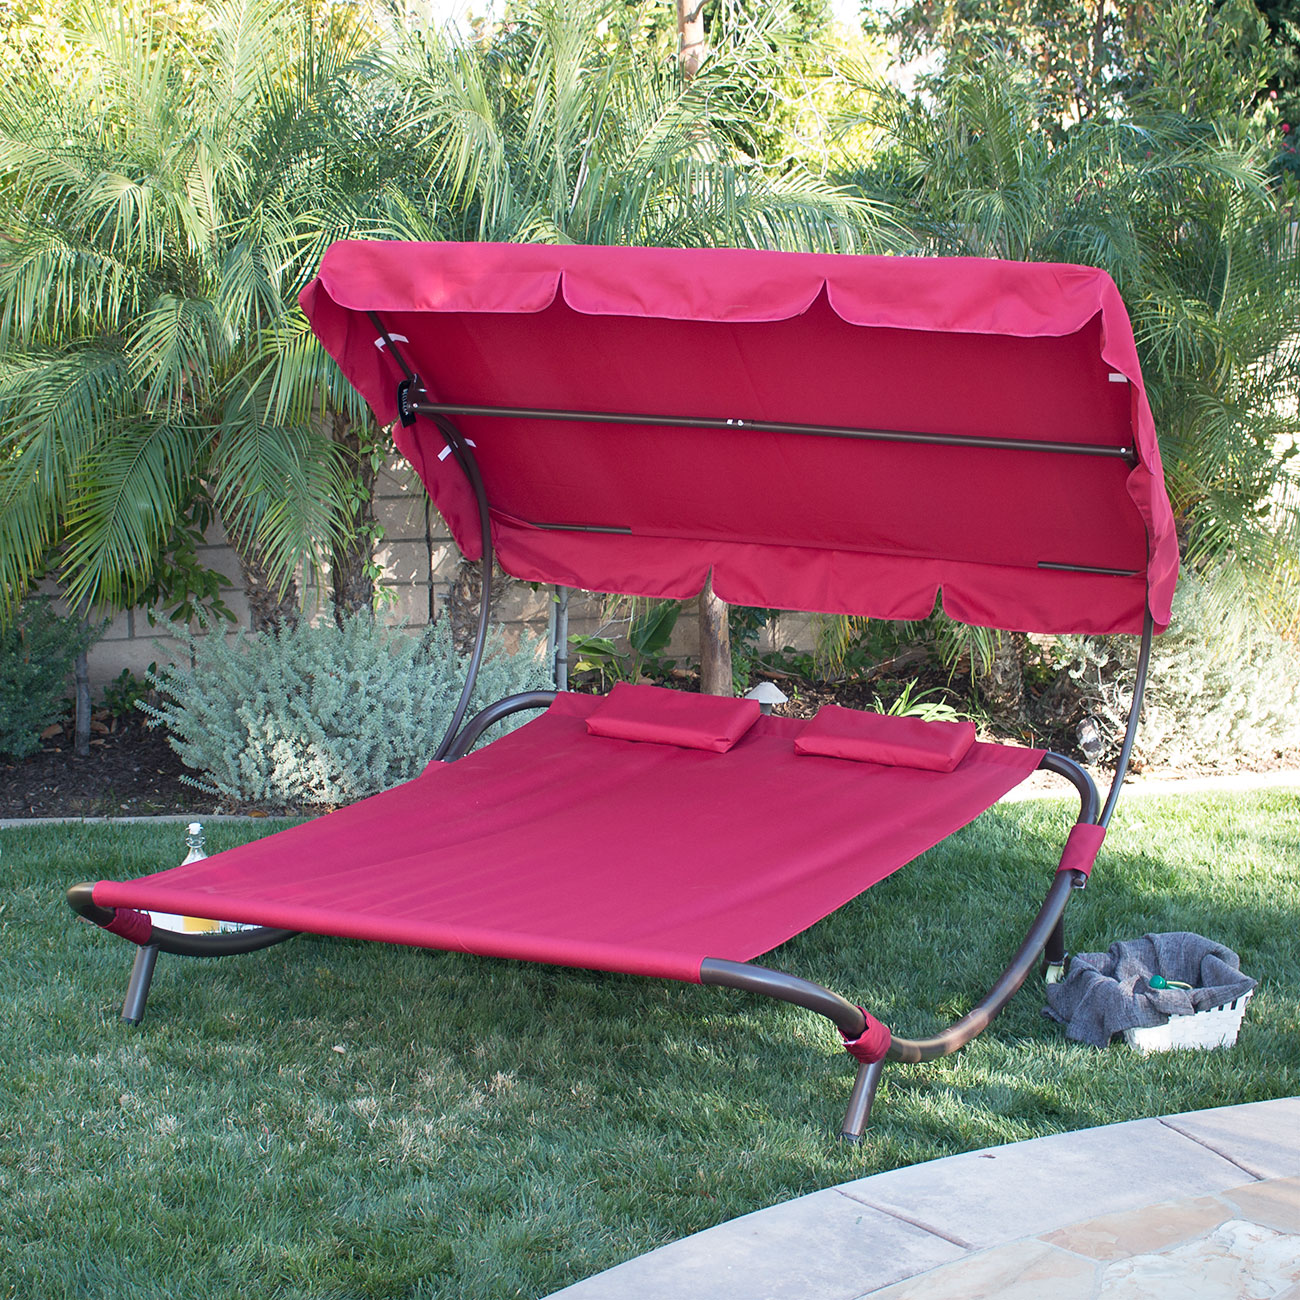 Outdoor chaise lounge chairs with canopy outdoor lounge for Garden pool loungers